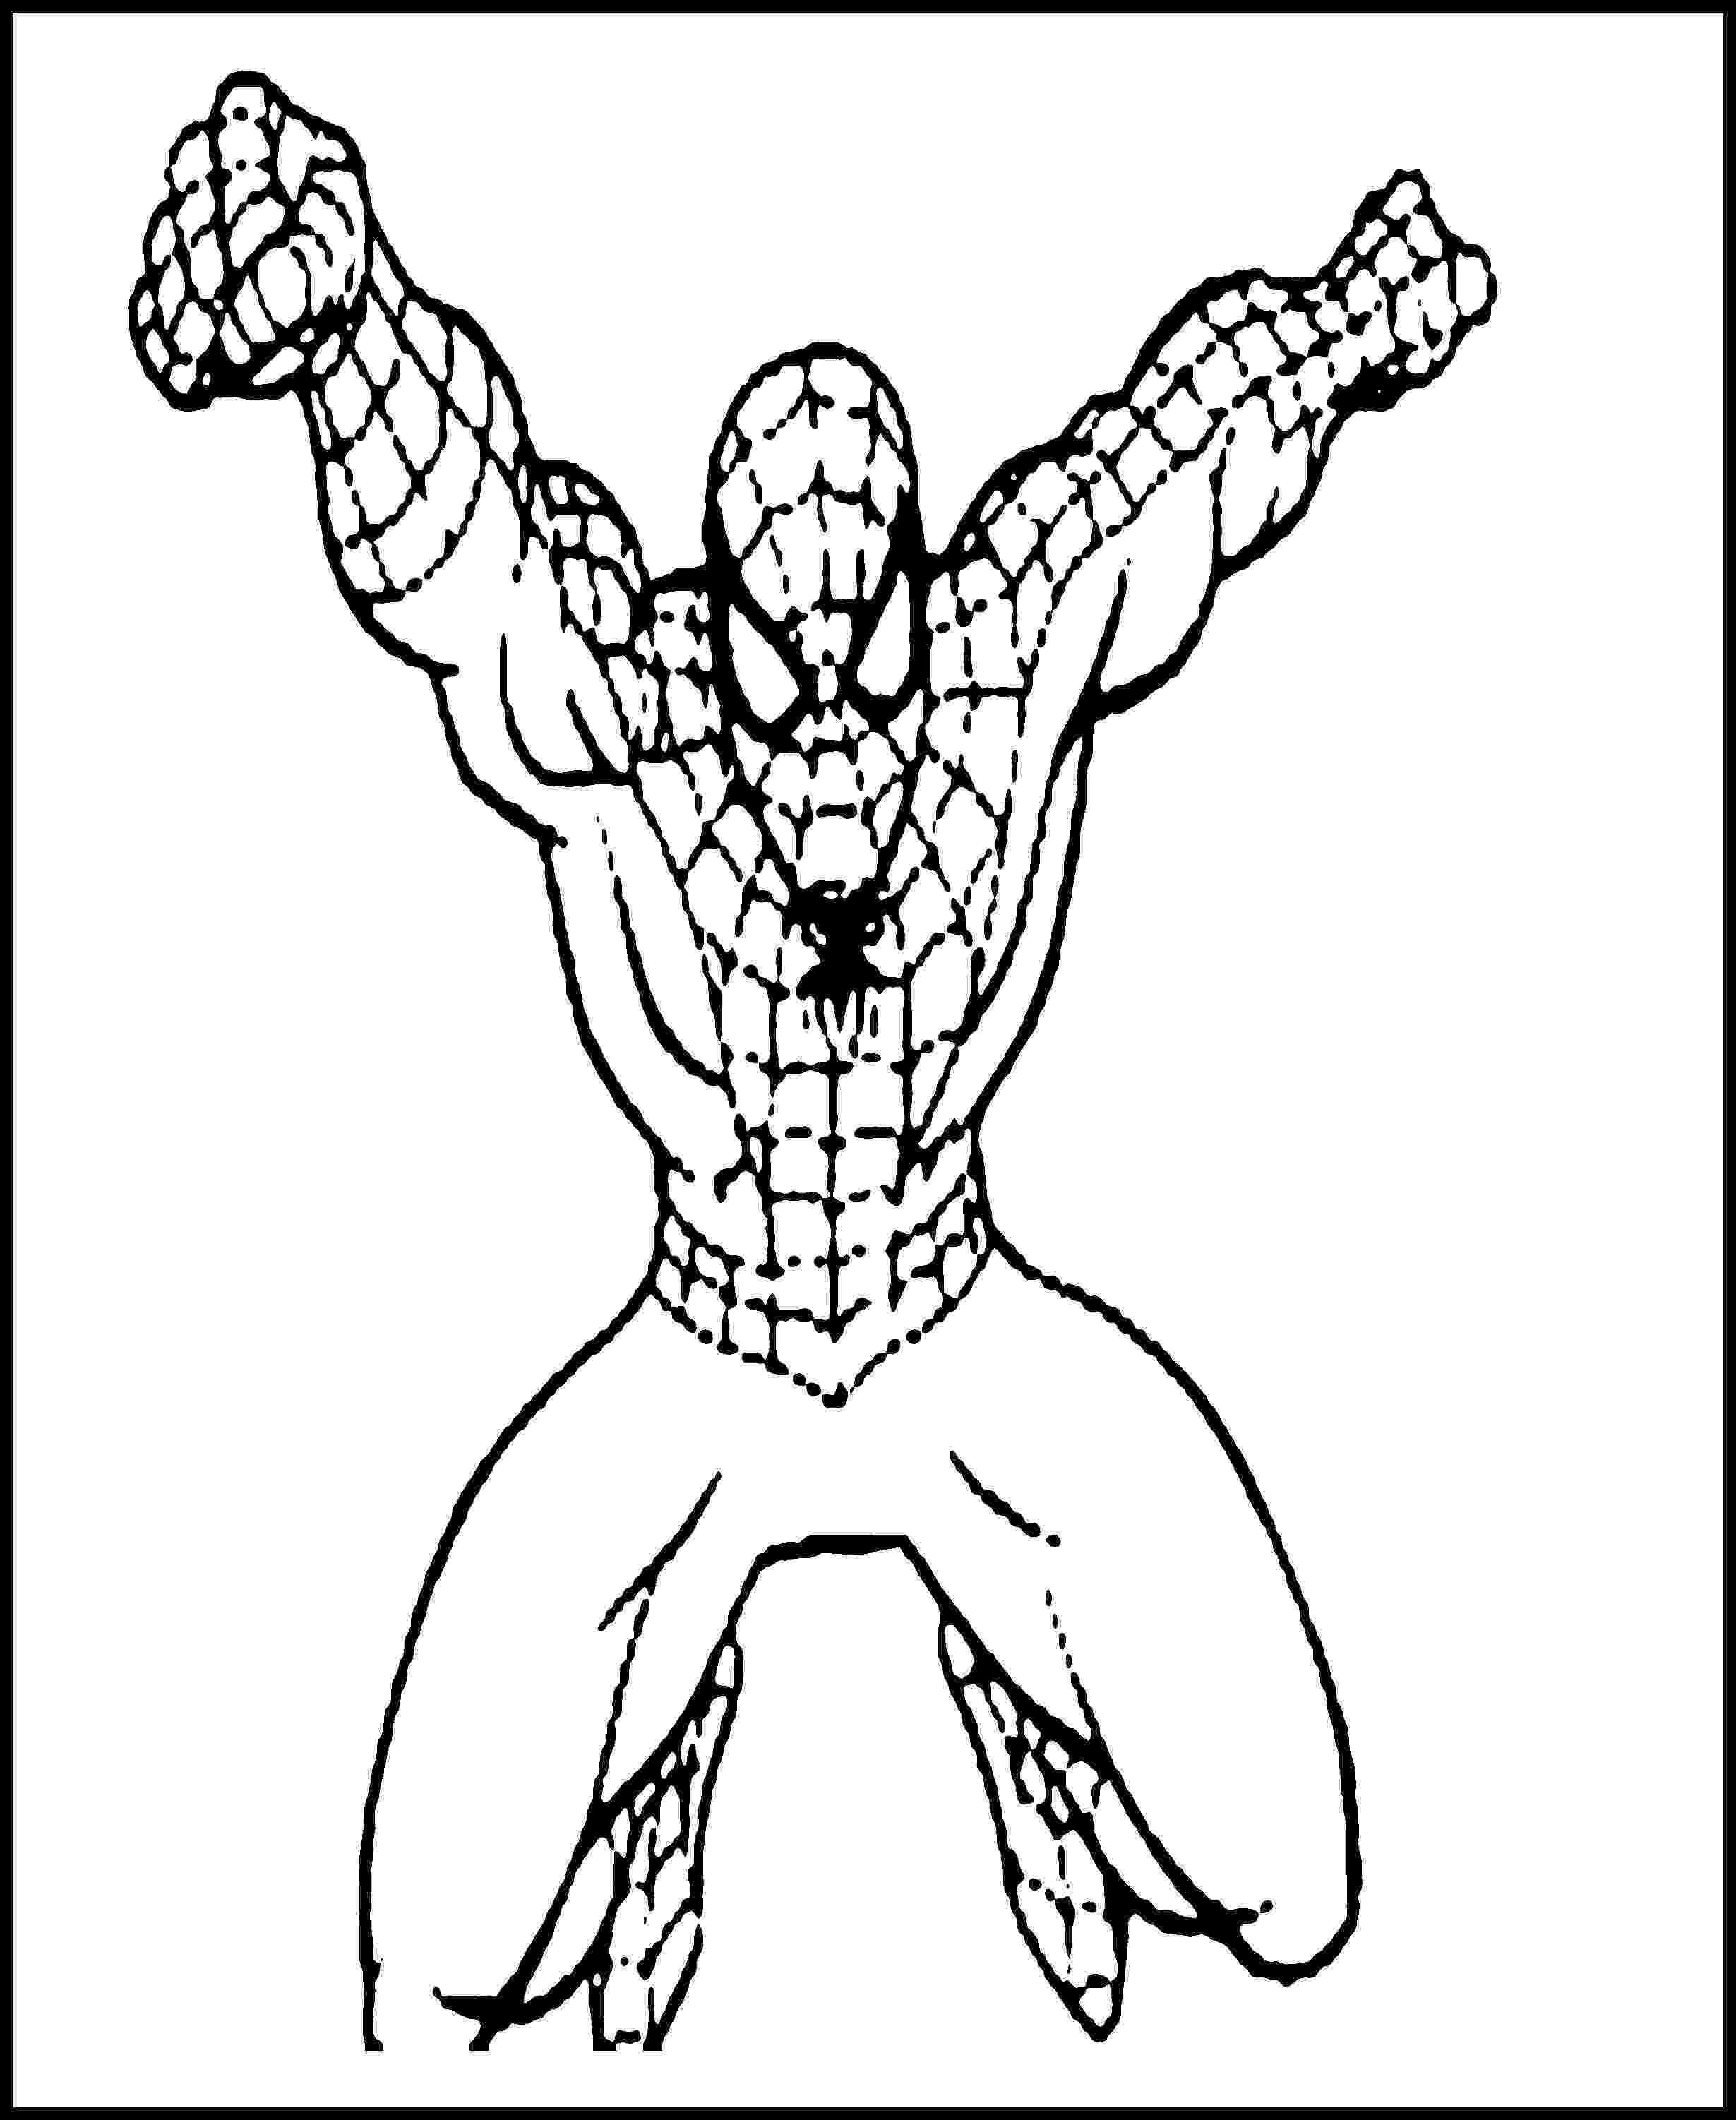 spiderman printout coloring pages spiderman free printable coloring pages printout spiderman